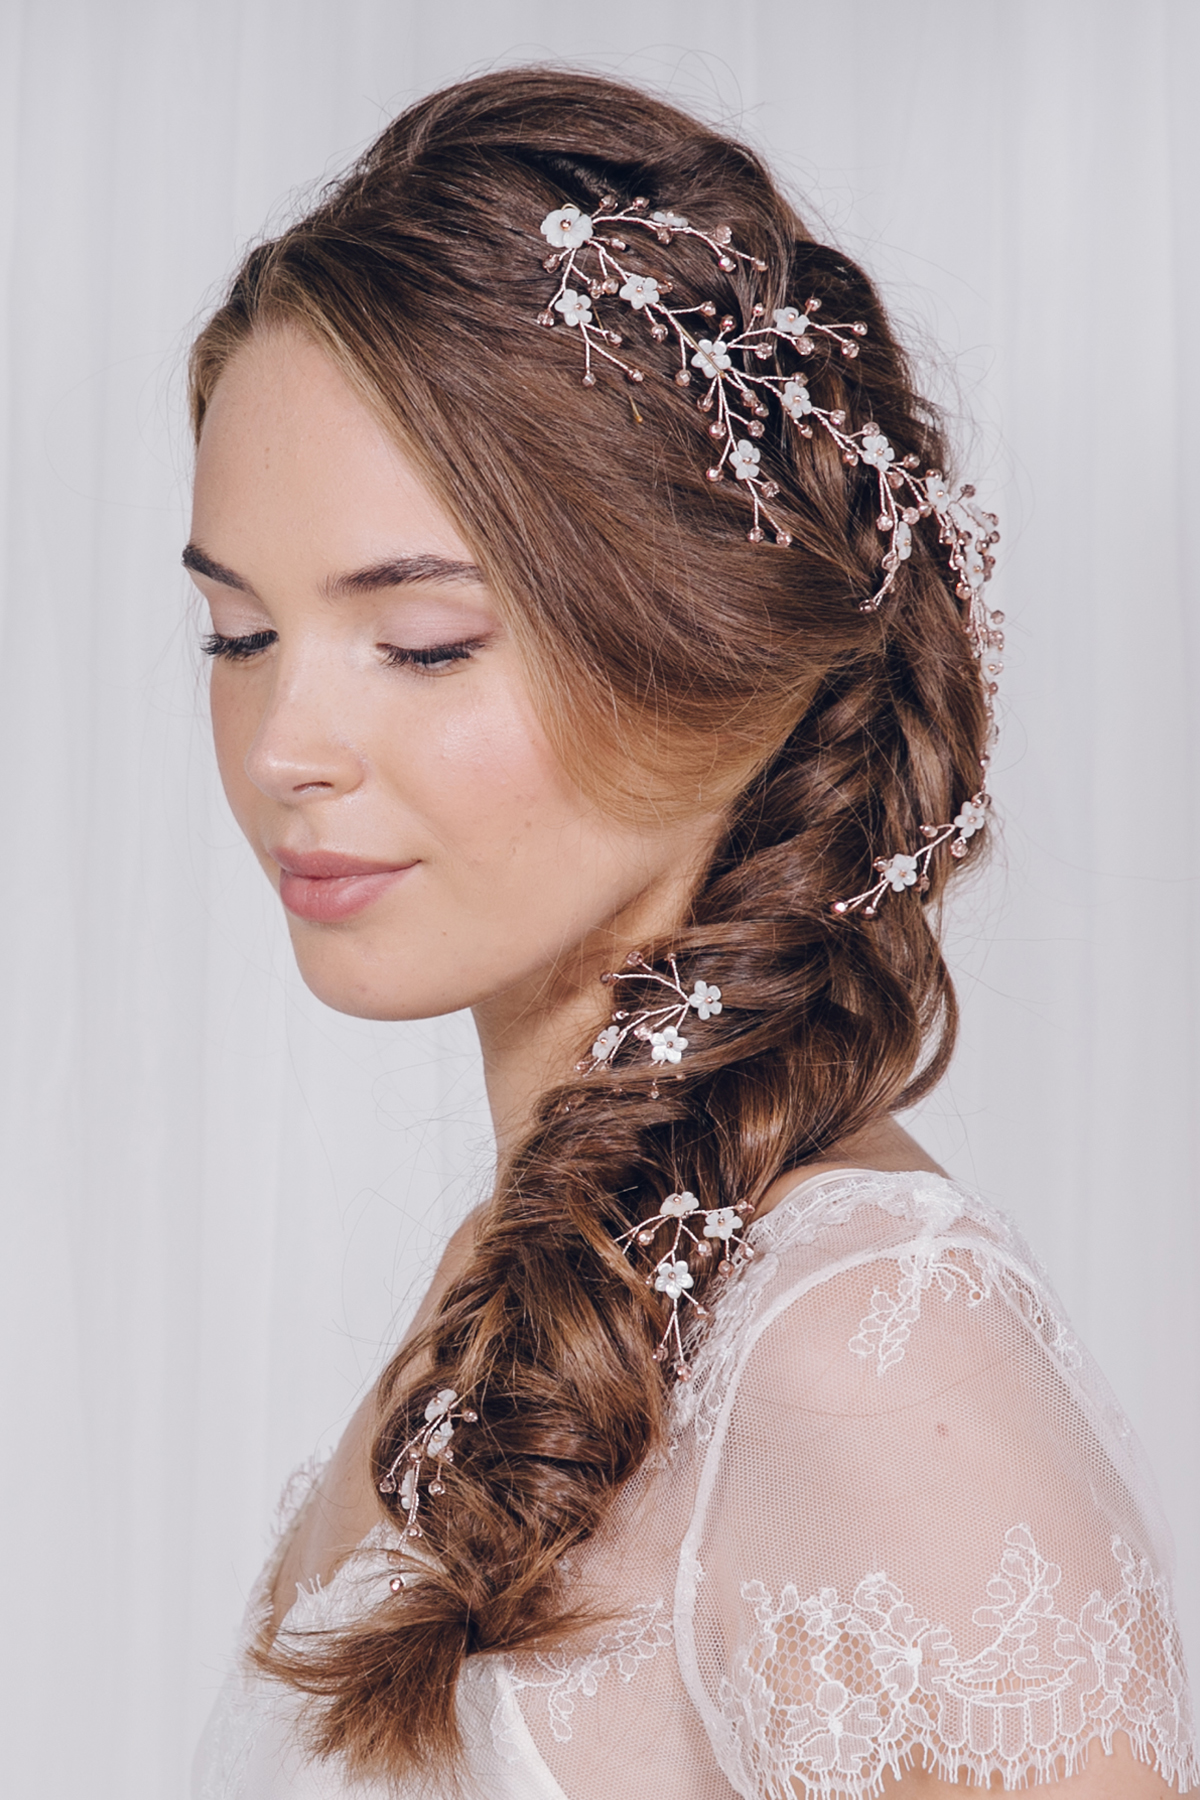 a guide to bridal hair accessory styling with debbie carlisle | love